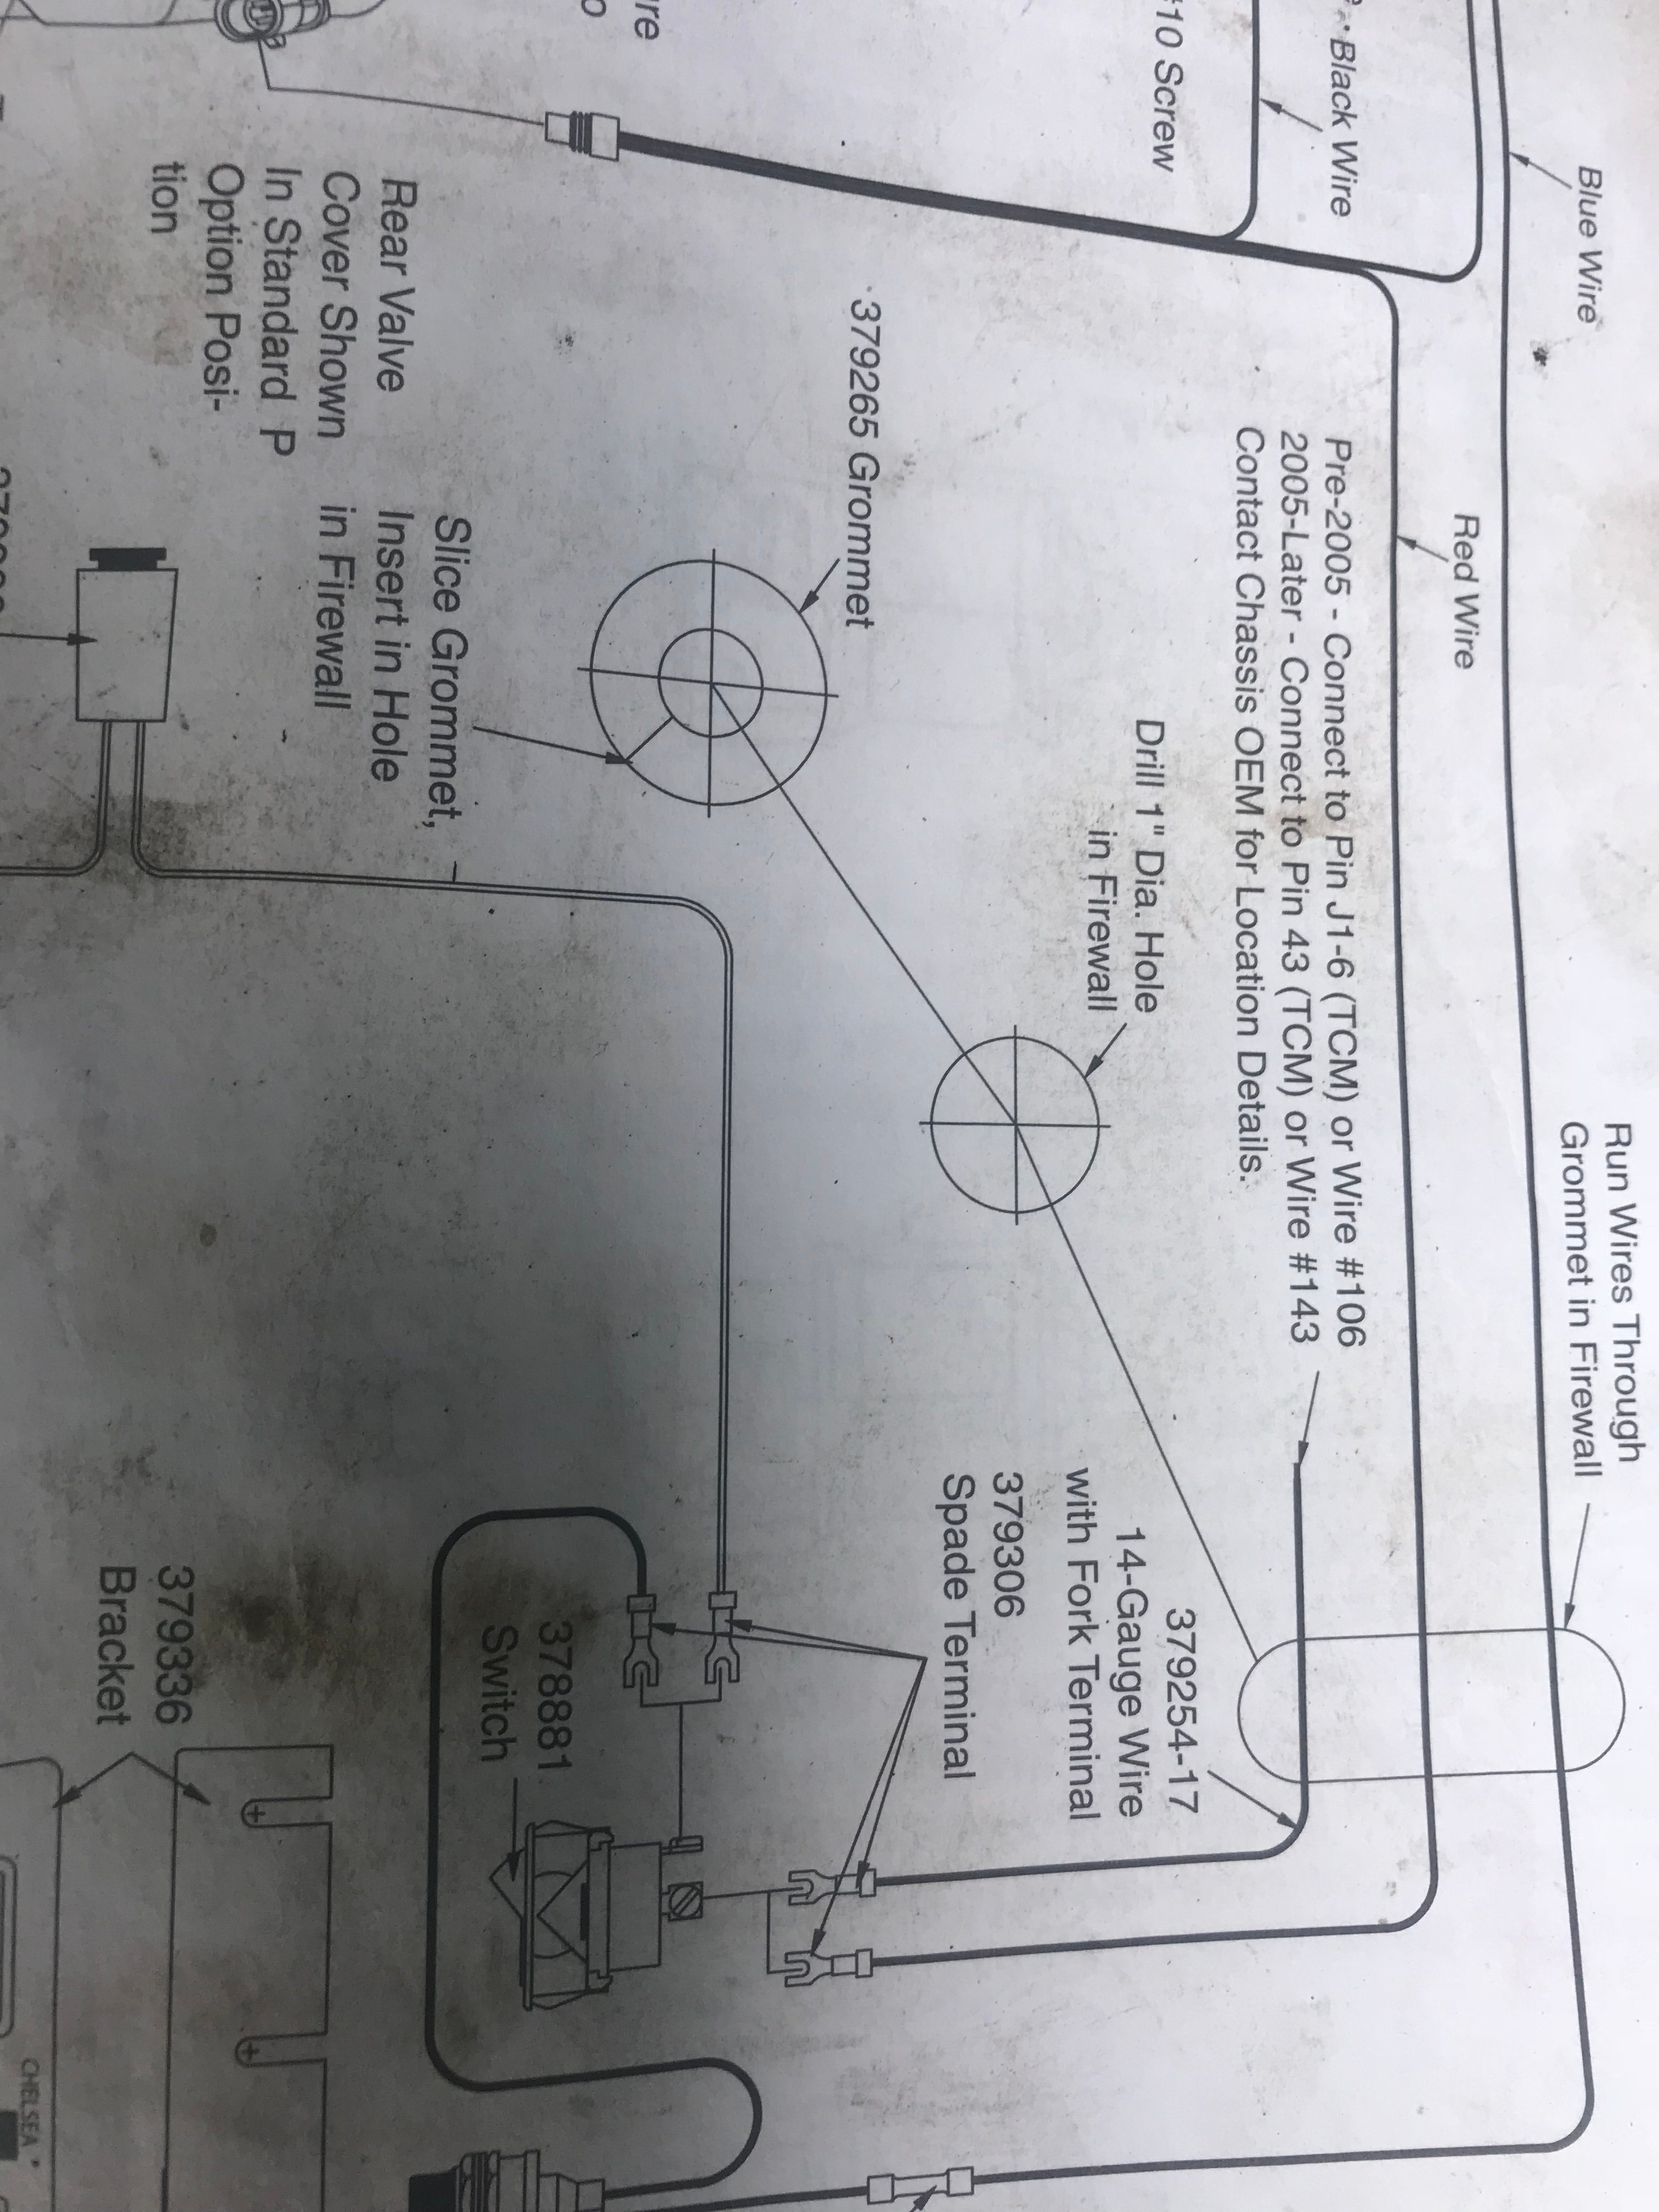 I need to onnect a wire to the transmission ecu for my new ... F Wiring Diagram Muncie Pto on